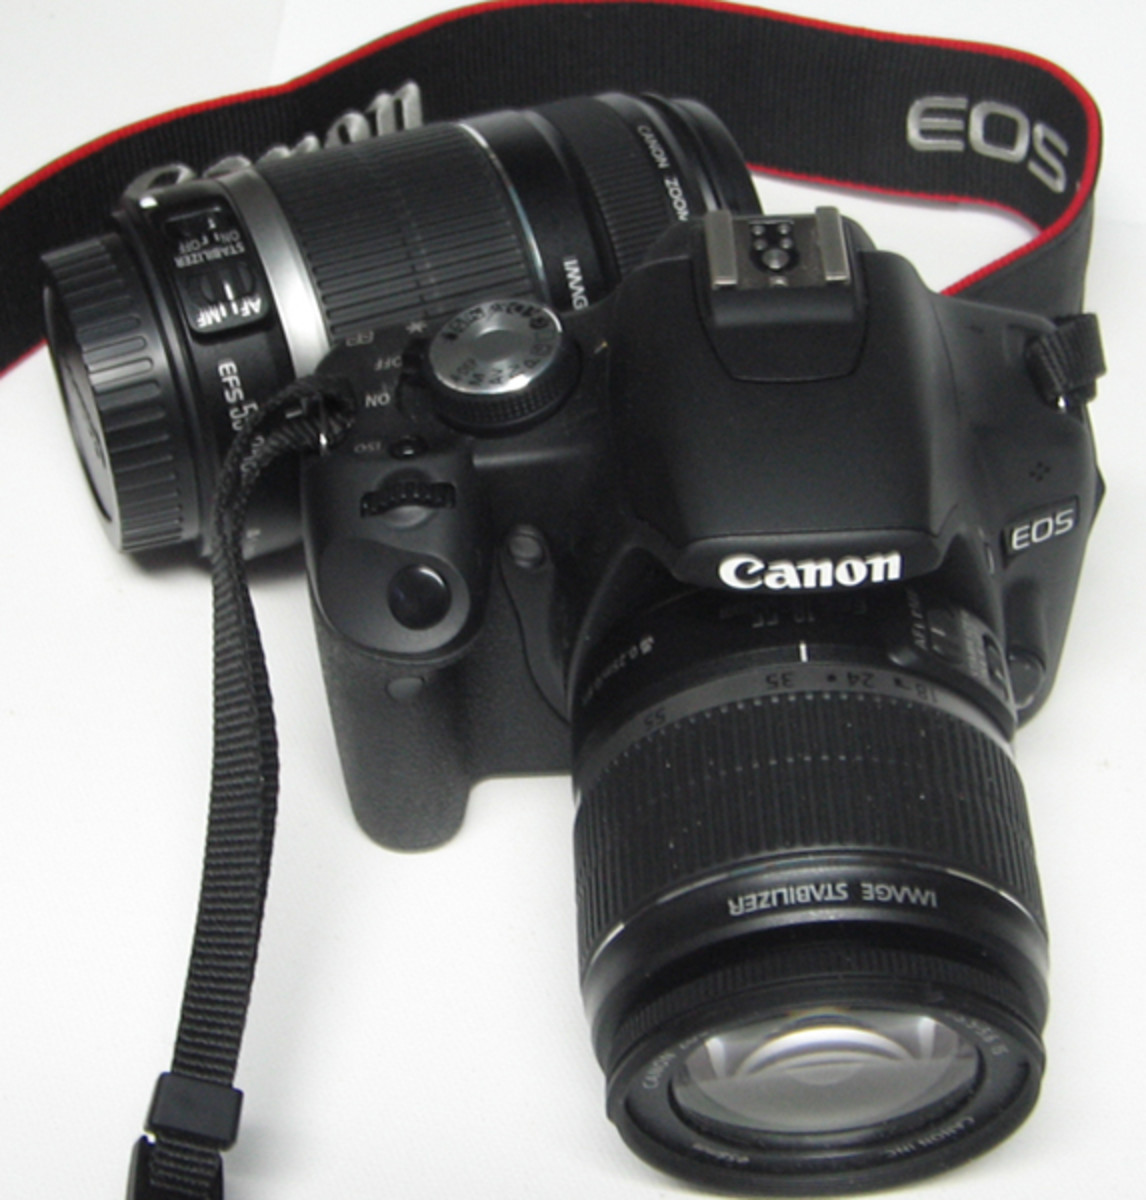 Digital Photography: Canon Dslr 500d Camera Review